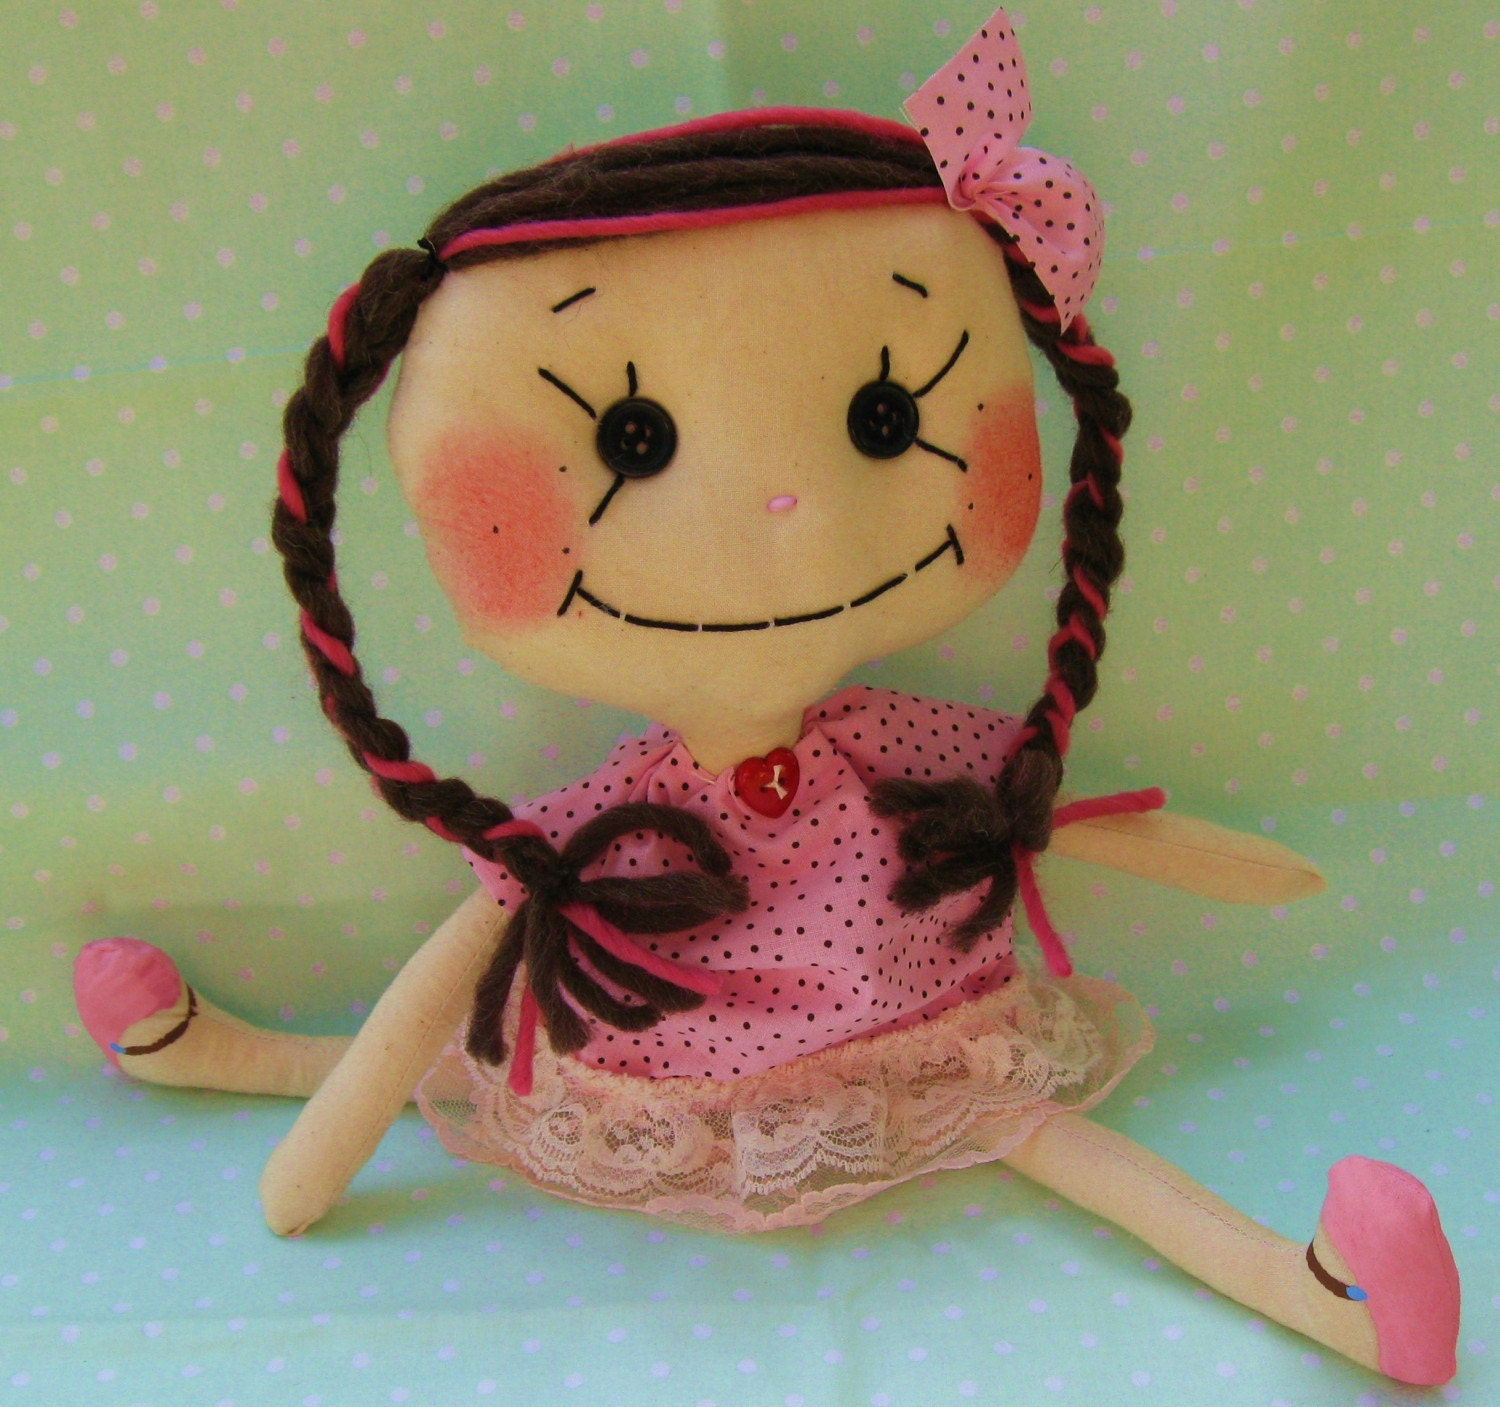 Chocolate Cherry Licorice Art Doll